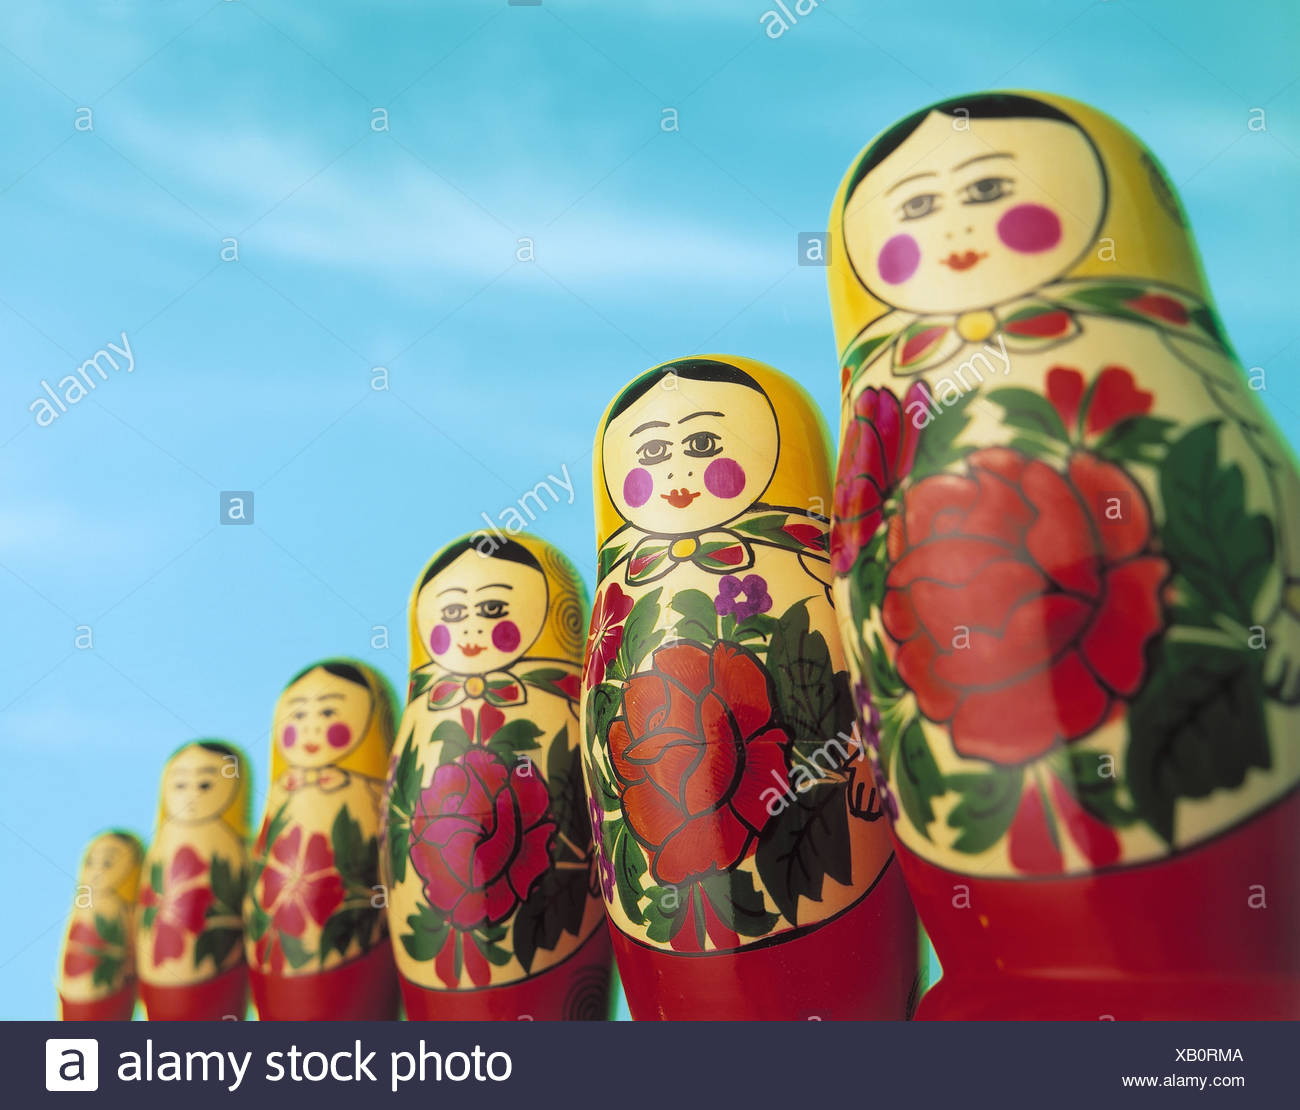 Matroschka, wooden figures, size, passed away, Matrjoschka, doll, wooden doll, toys, folk art, in Russian, souvenir, comparison, size, size comparison, difference, differently, product photography, Still life Stock Photo